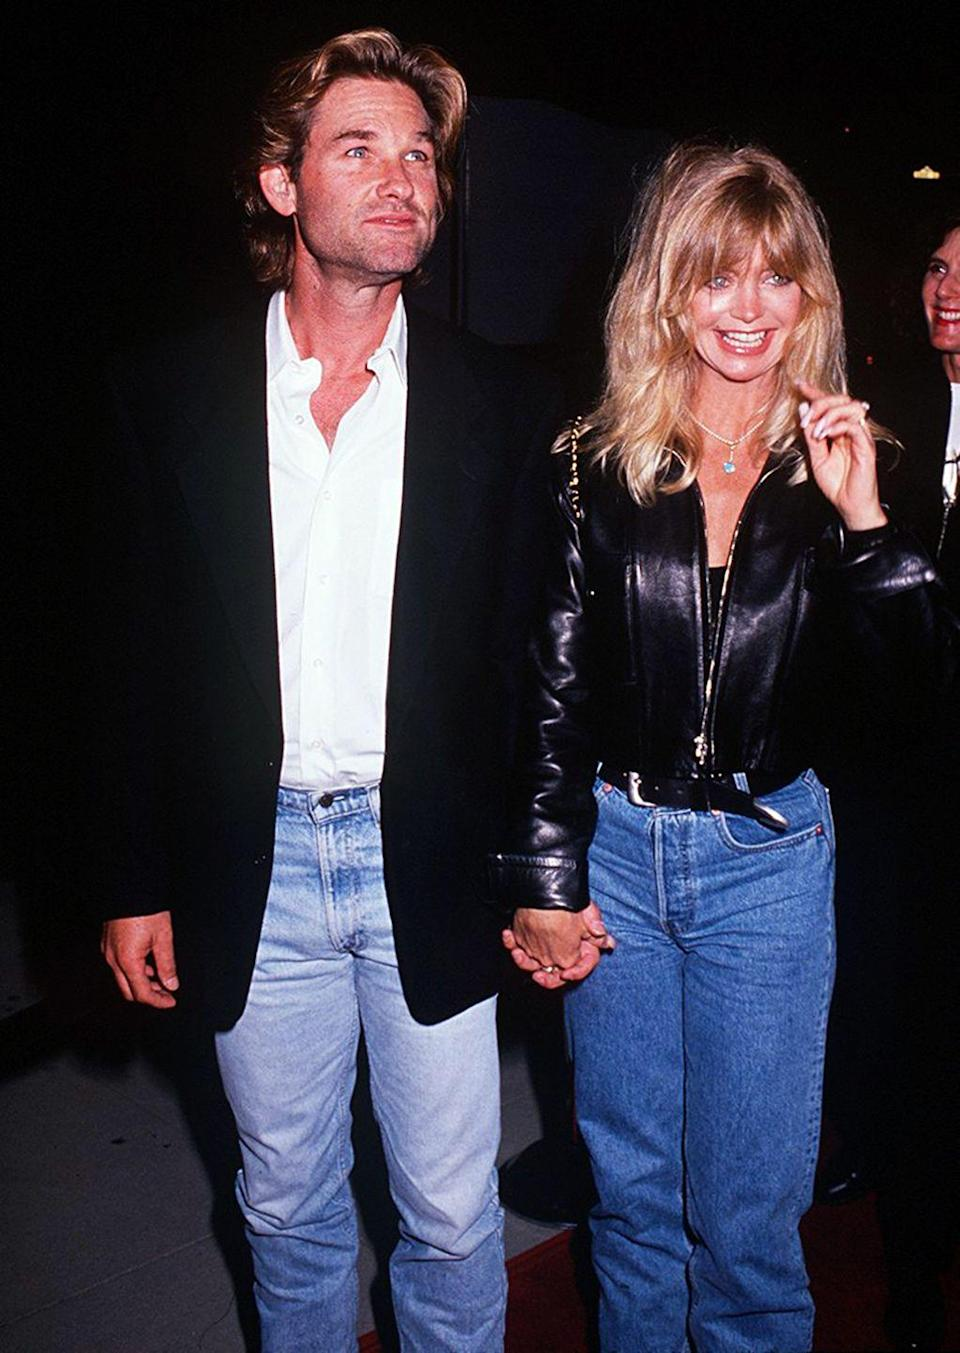 <p>Goldie Hawn keeps the early '90s denim look of choice going strong: The jeans were a lighter or middle-of-the-road shade of blue, the fabric stiff, and the legs straight, never too fitted or skinny.</p>